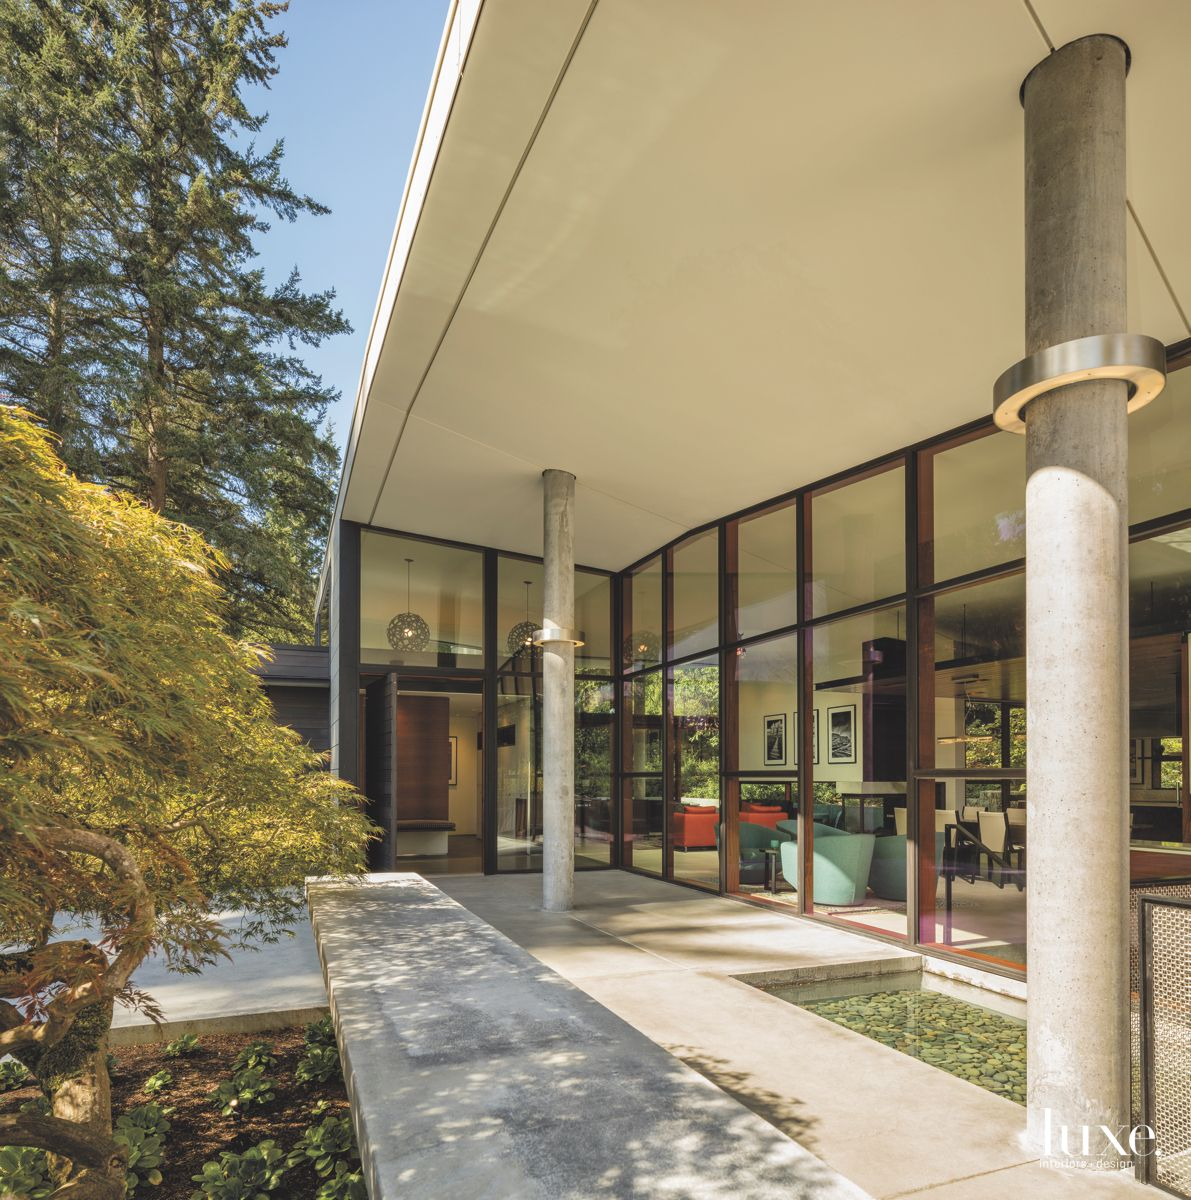 Contemporary Courtyard View with Tree Landscaping and Interior View